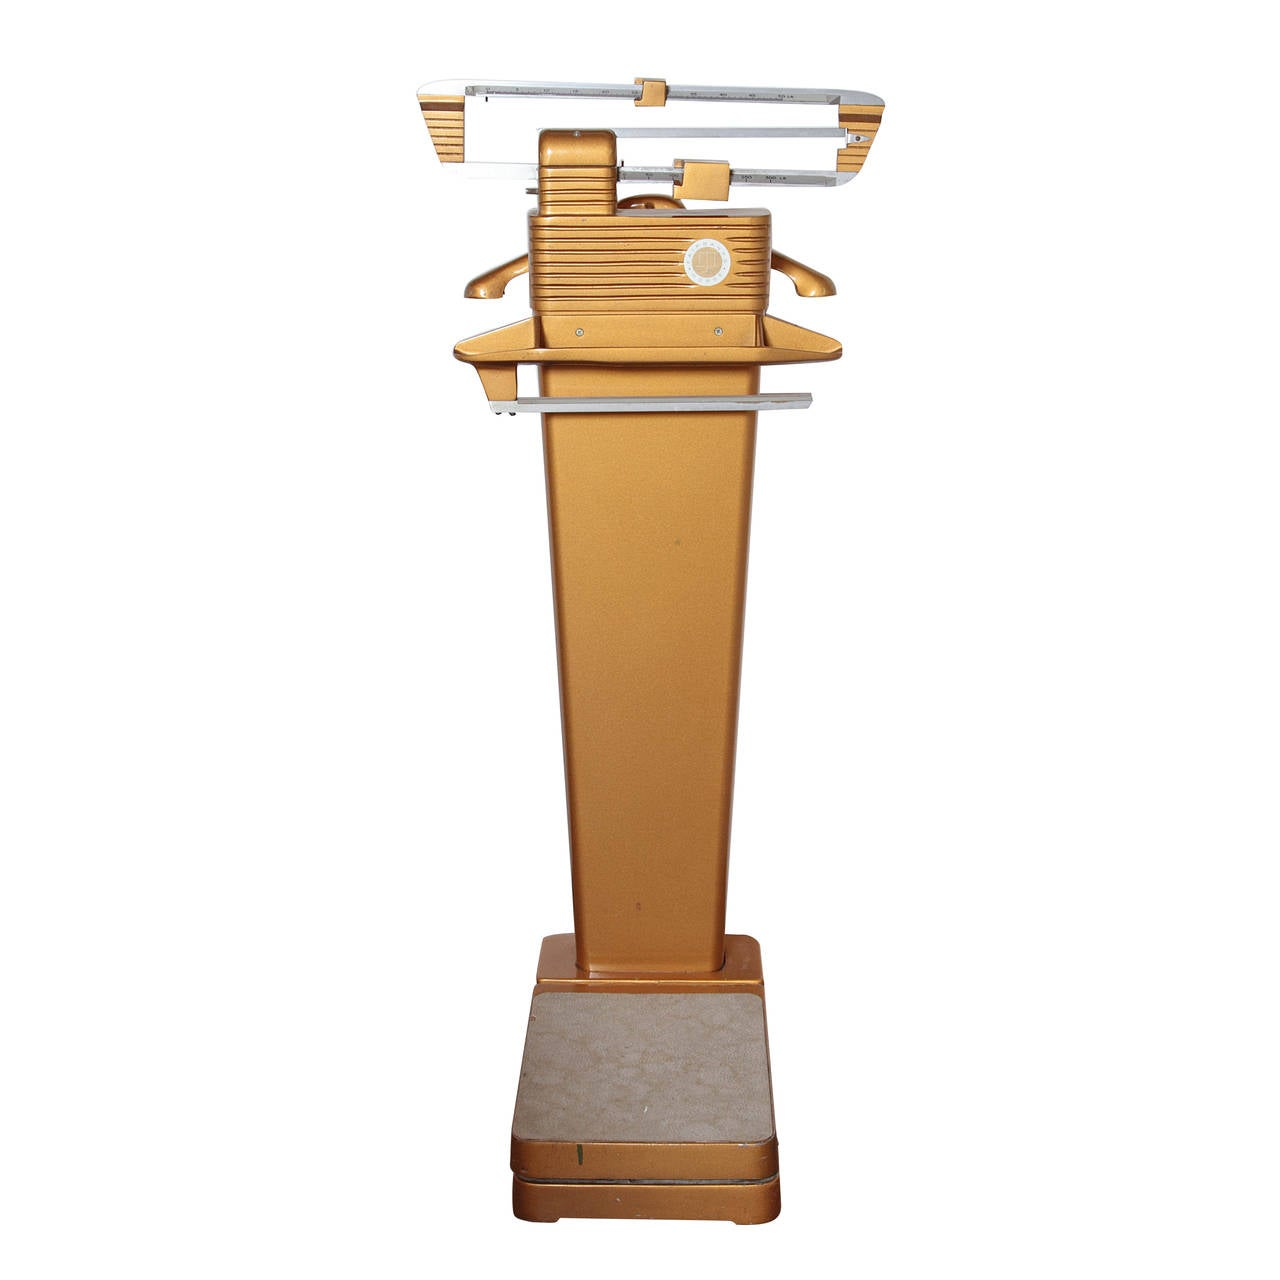 Classic Fairbanks Morse Patented Machine Age Design Gentleman's Valet Scale